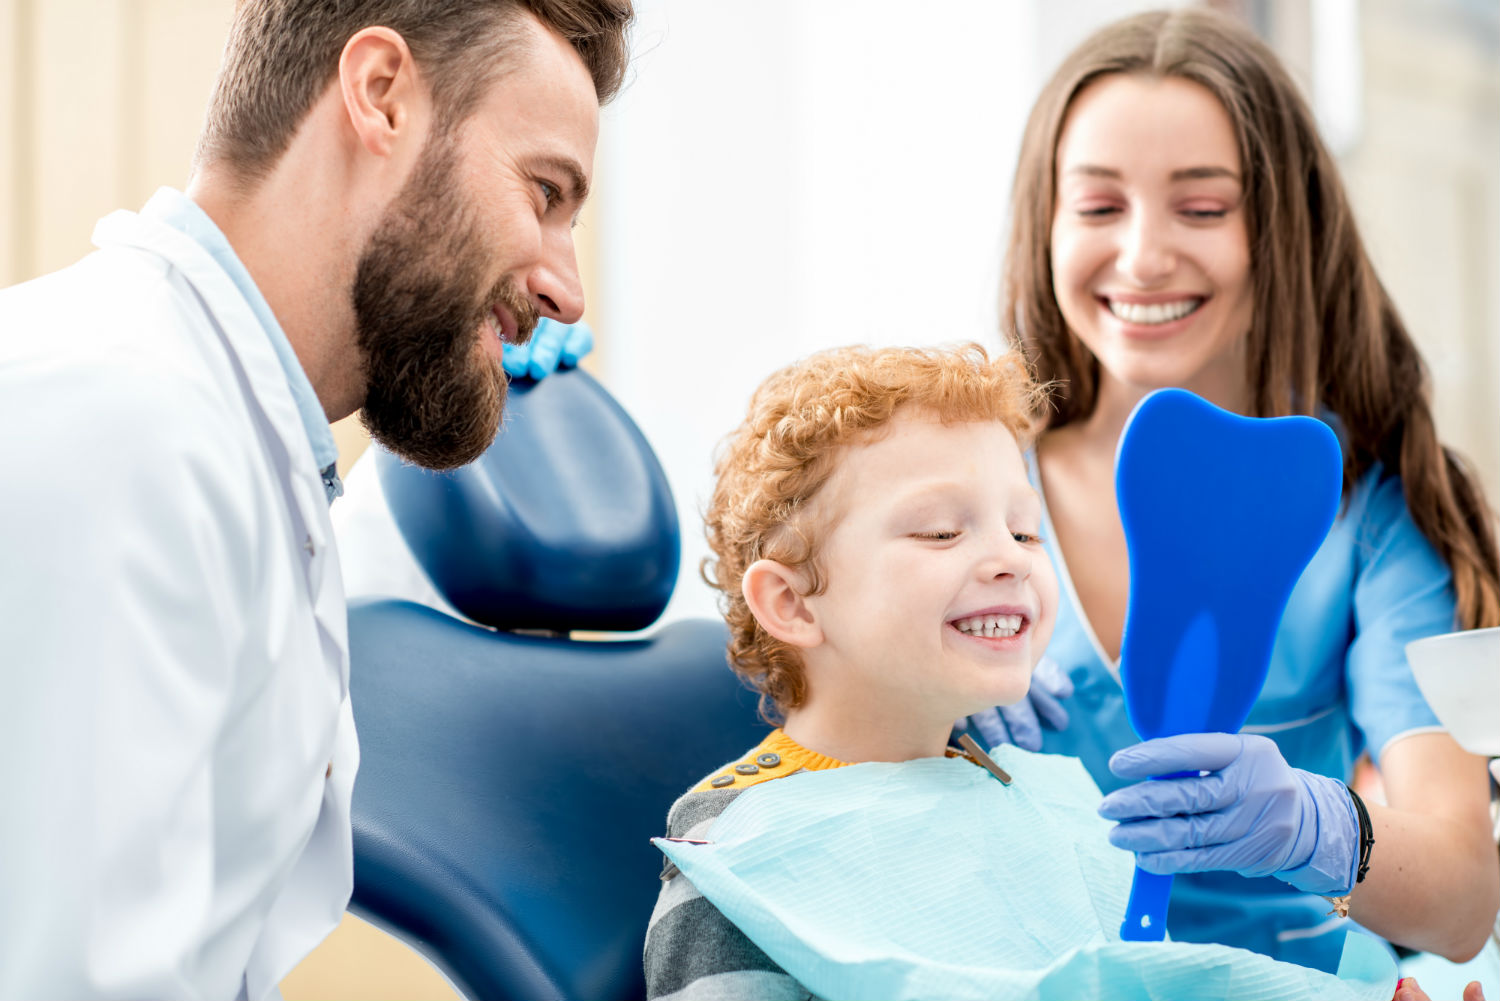 How To Help Your Children Practice Good Oral Hygiene At Home